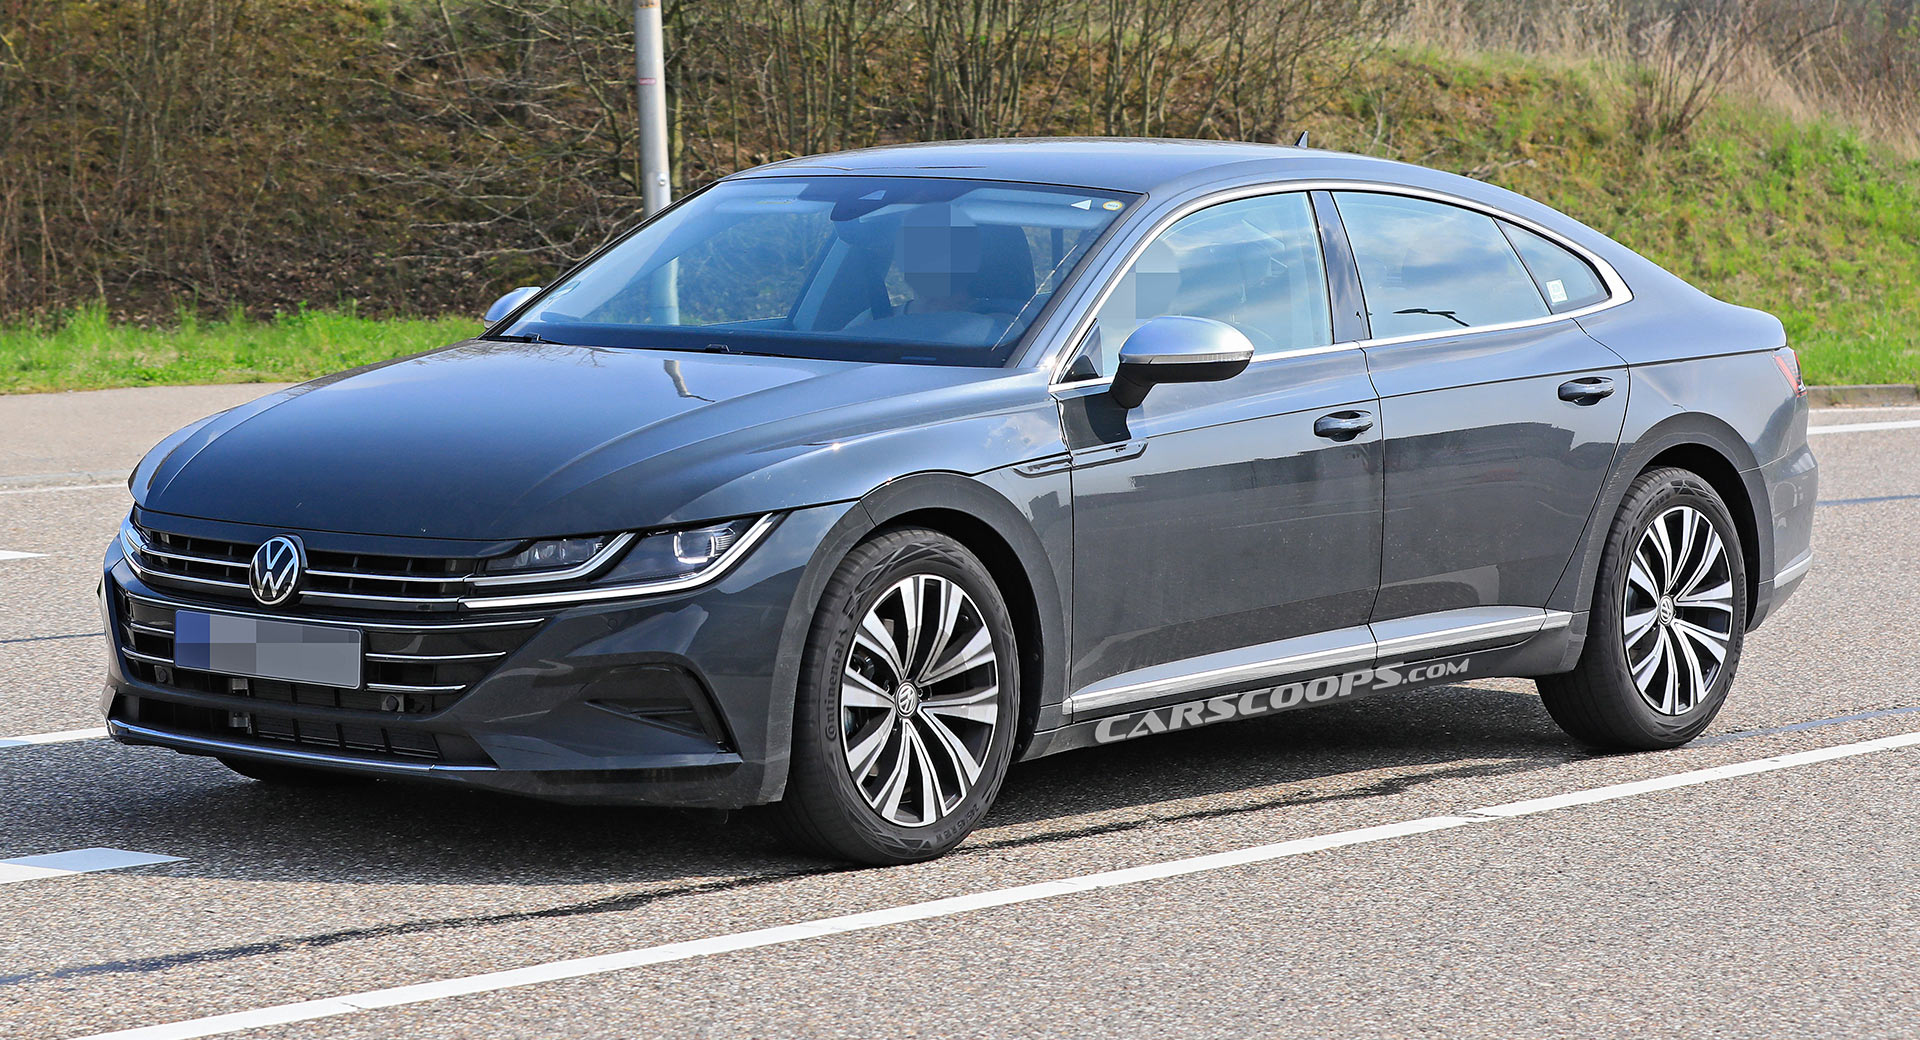 2021 Volkswagen Arteon Facelift Scooped Without Camouflage